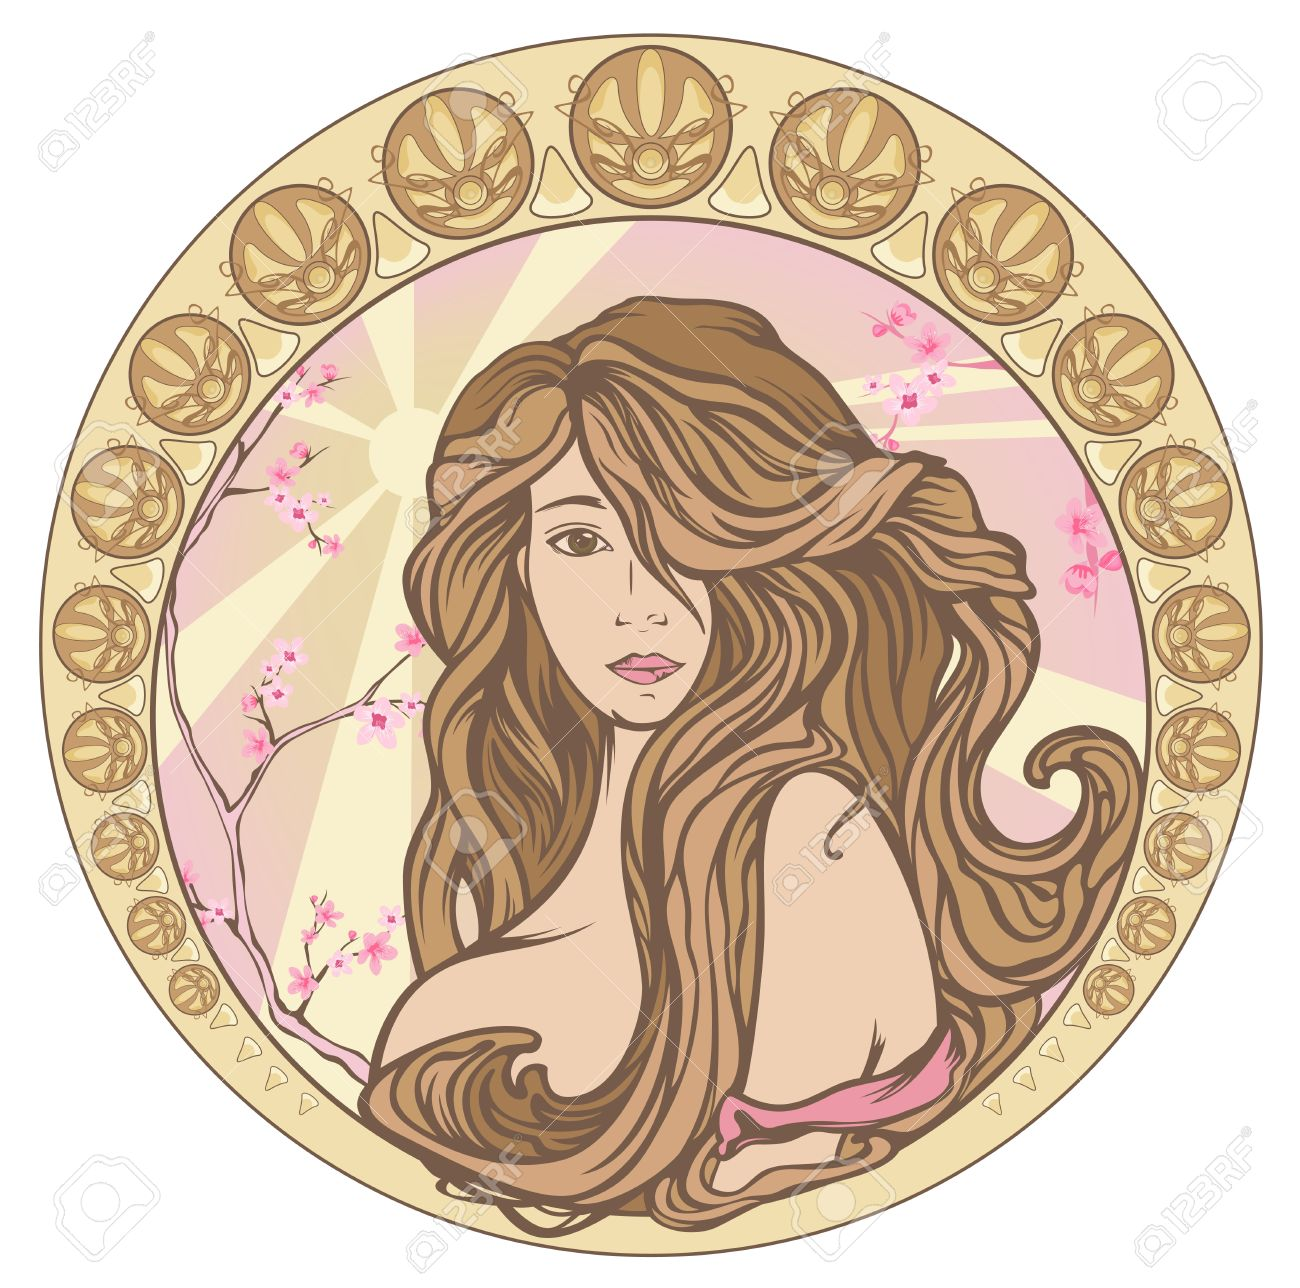 Spring Time Art Nouveau Style Pastel Shades Portrait Beautiful Royalty Free Cliparts Vectors And Stock Illustration Image 18934931